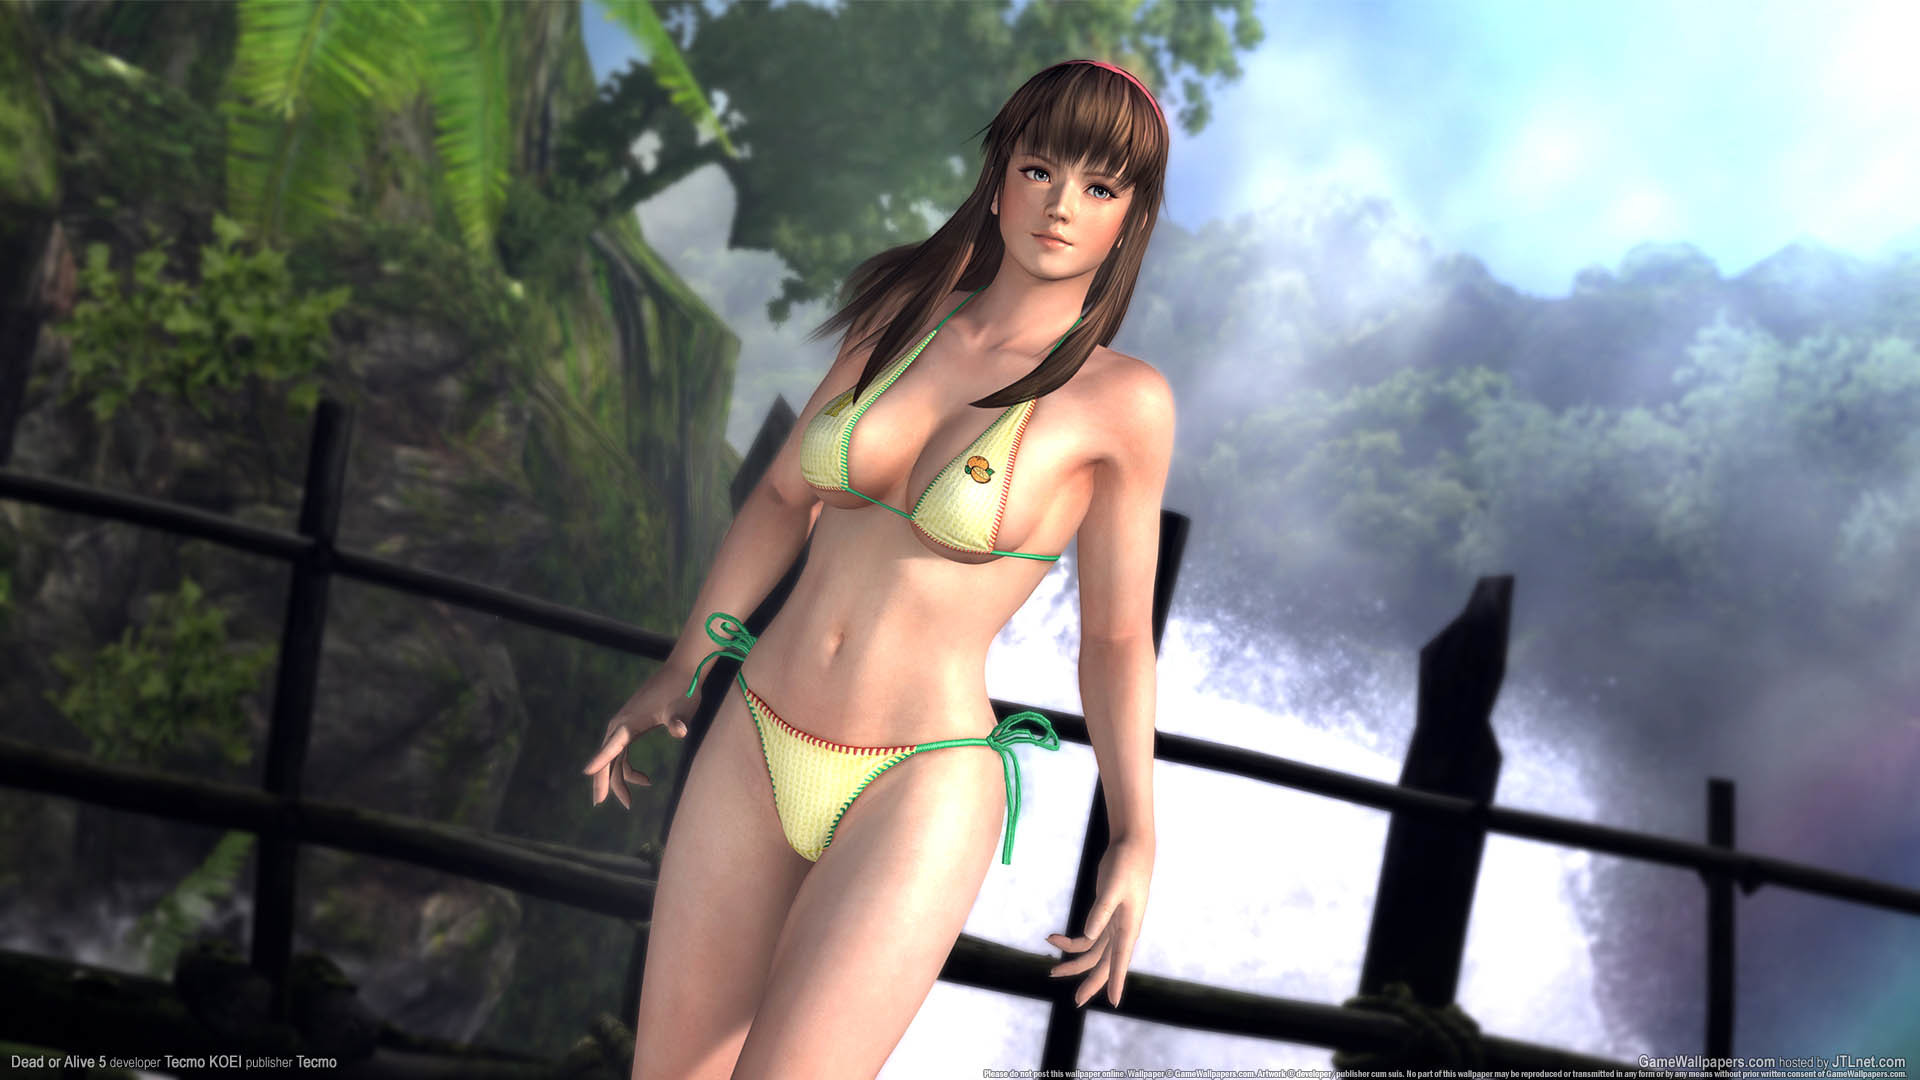 1920x1080 ... Dead or Alive 5 wallpaper or background 01